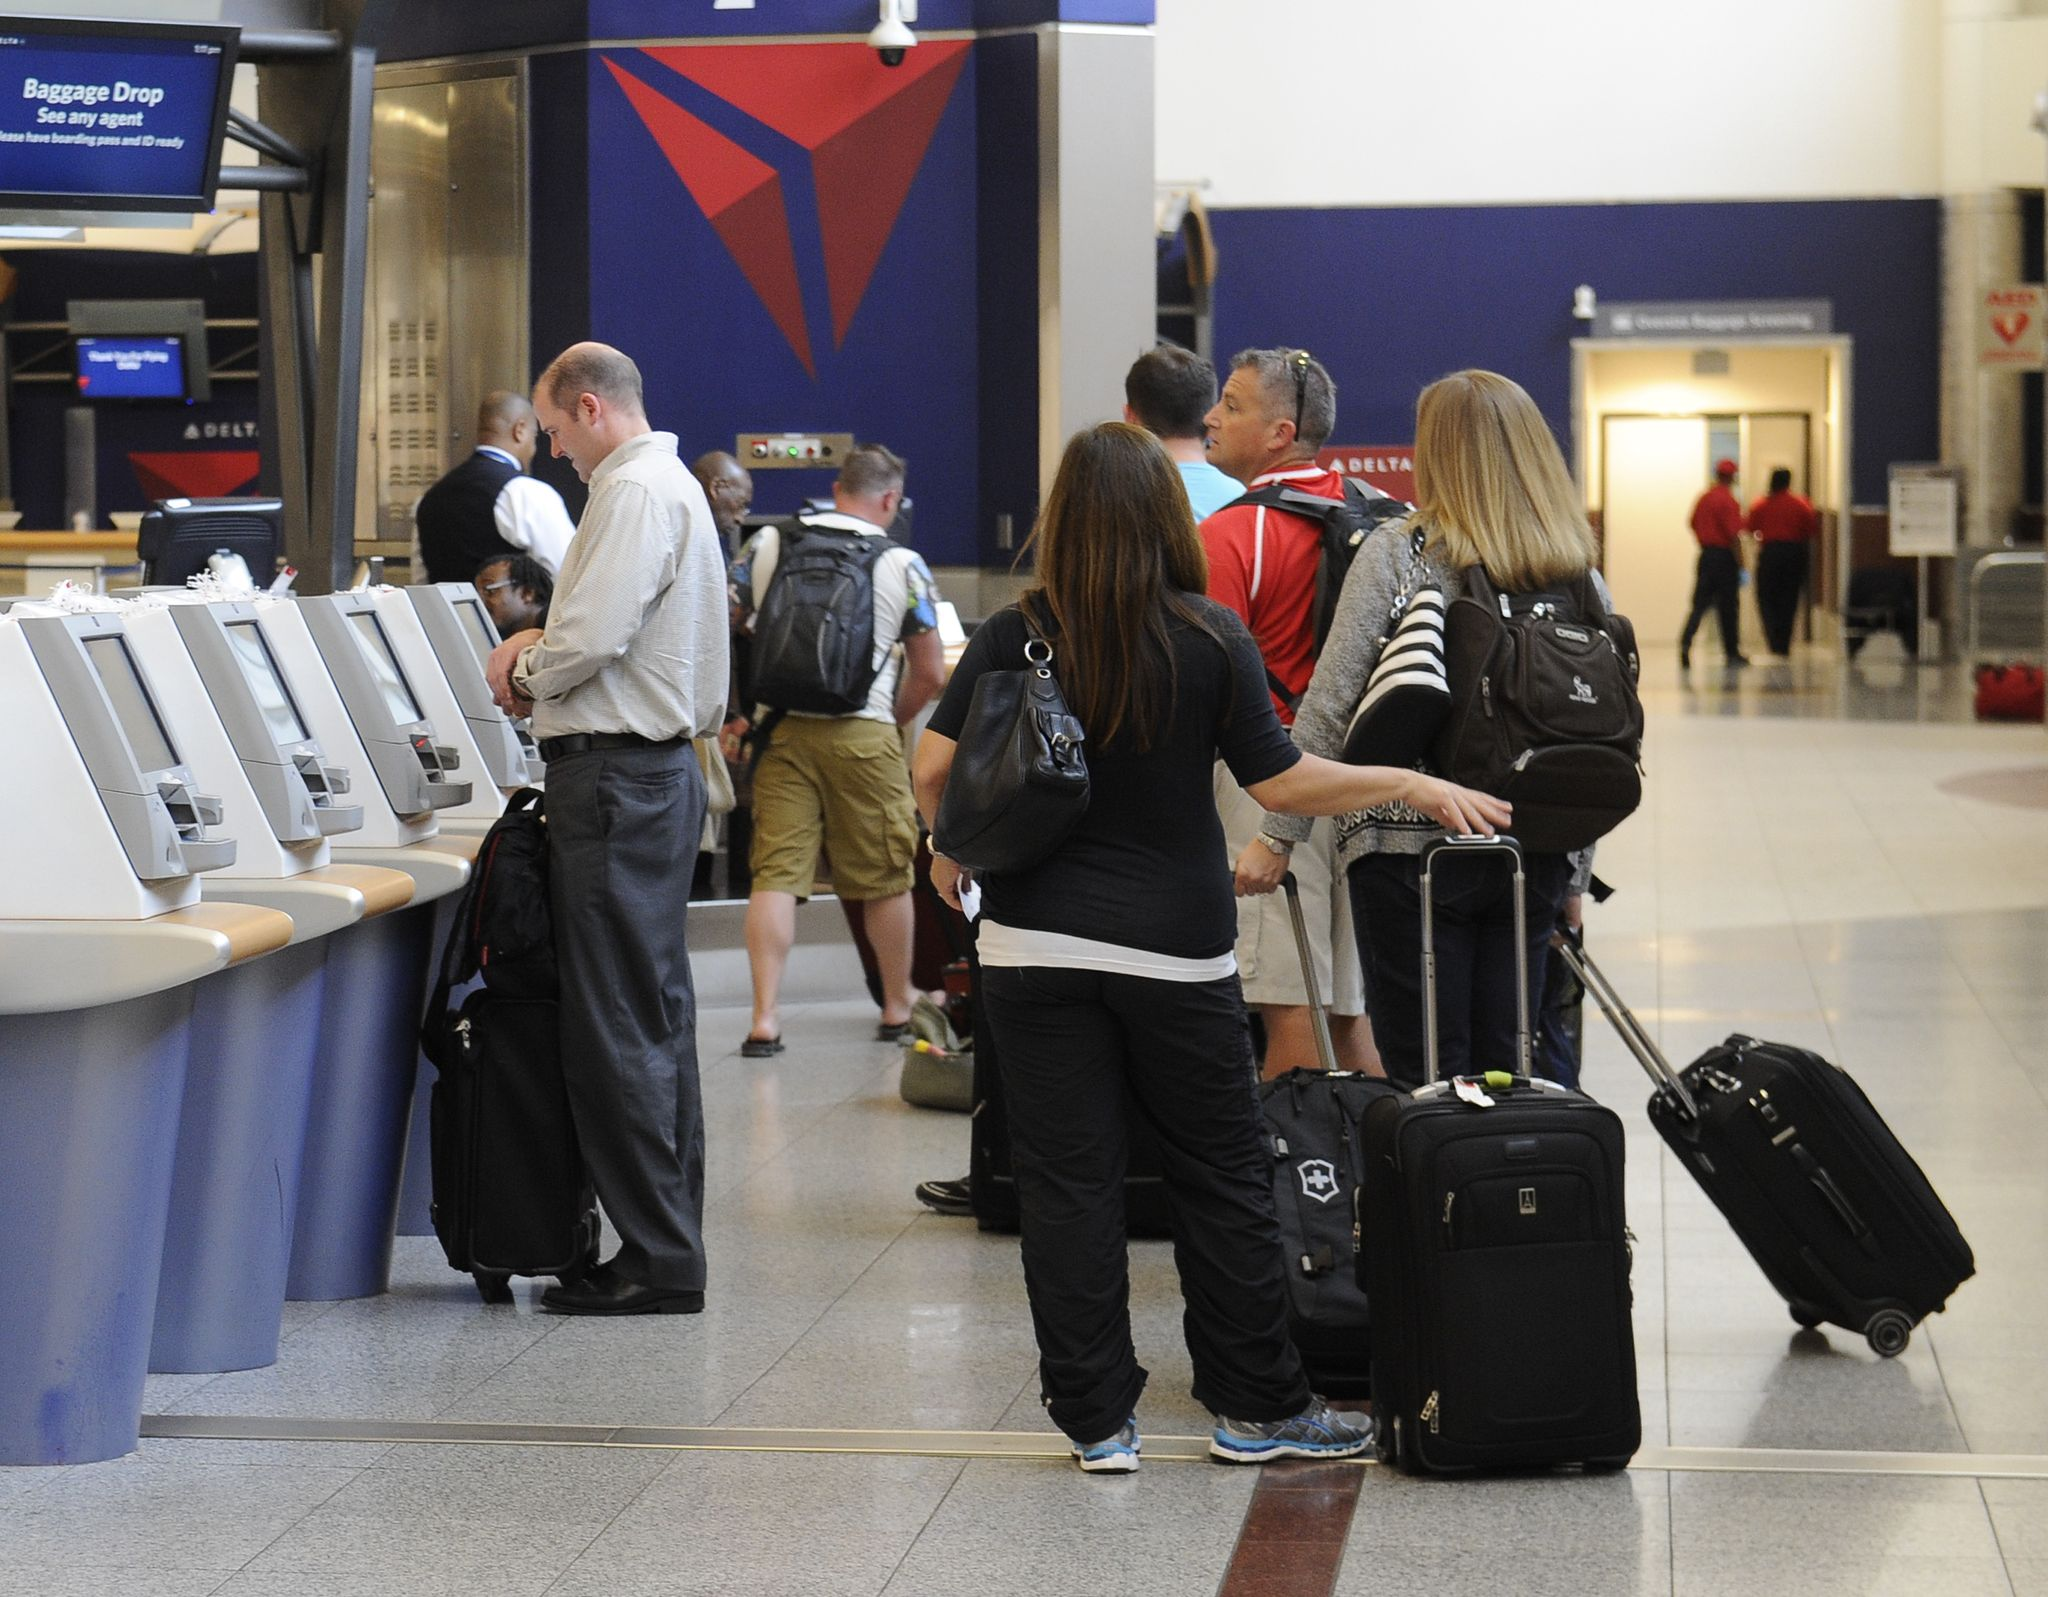 Airlines' newest fees pay for legroom, better food